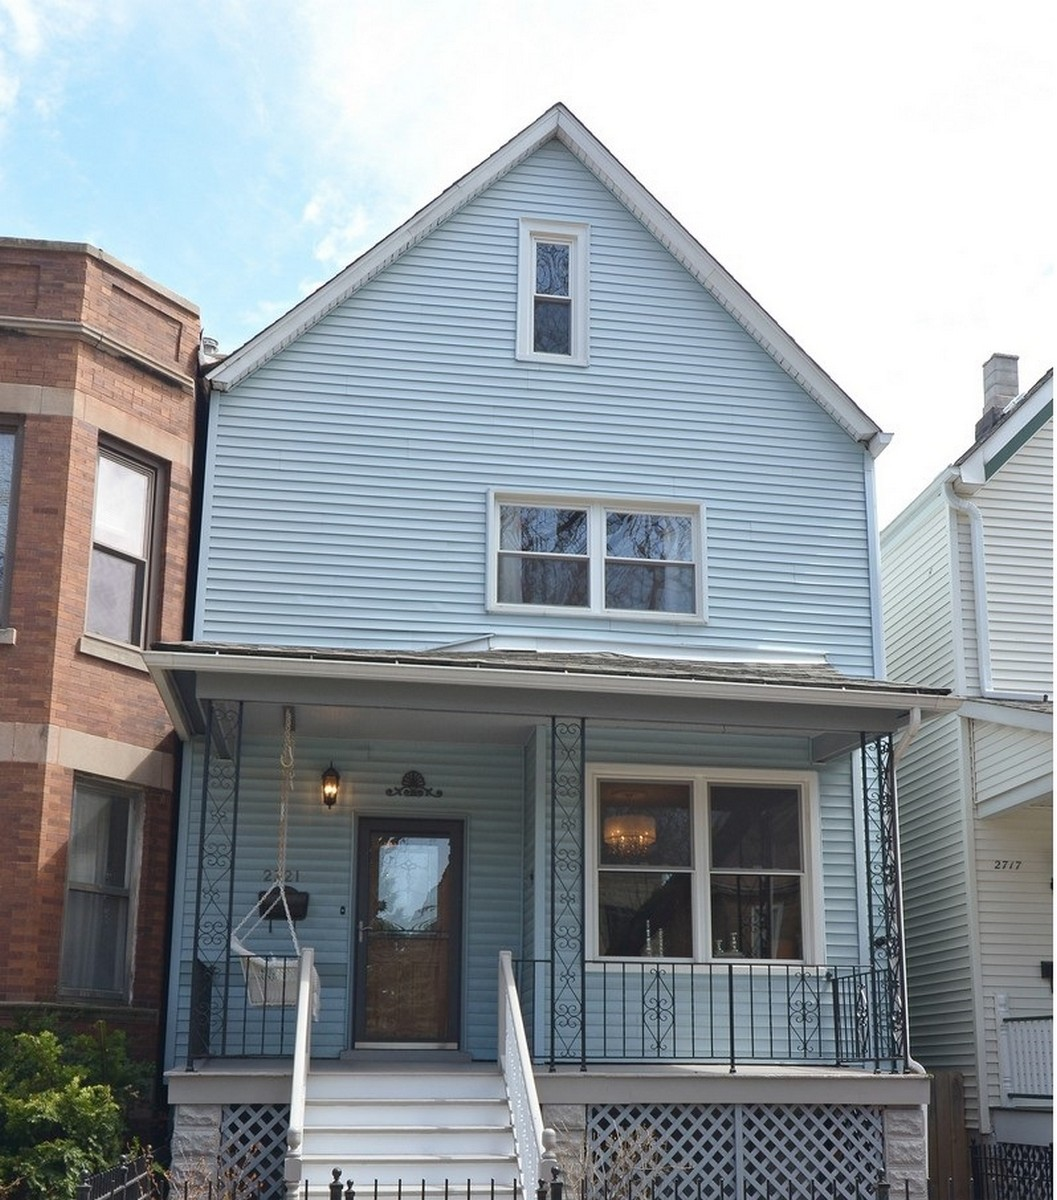 Single Family Home for Sale at Rehabbed Classic Victorian 2721 N Mozart Street Logan Square, Chicago, Illinois, 60647 United States